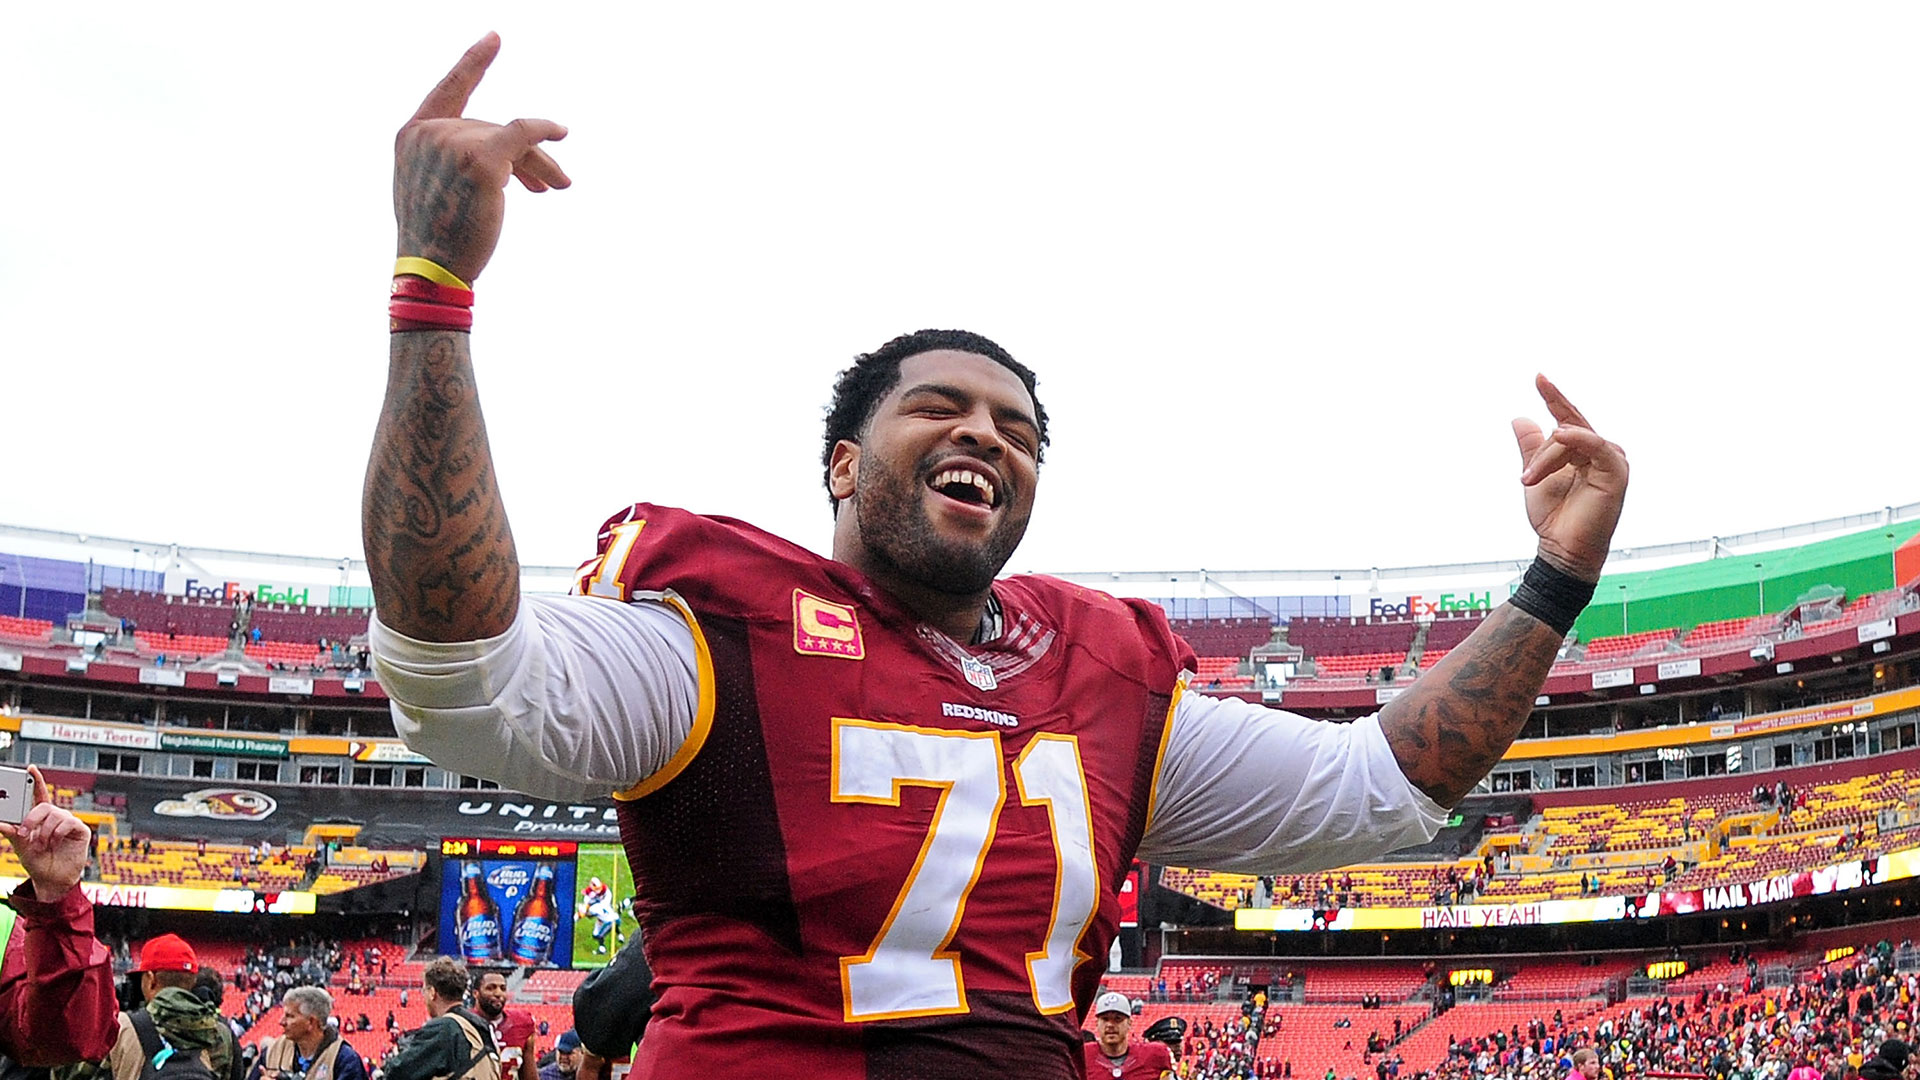 Trent-williams-101315-getty-ftrjpg_jdn7a575np4l1k6hnqr8igyq9